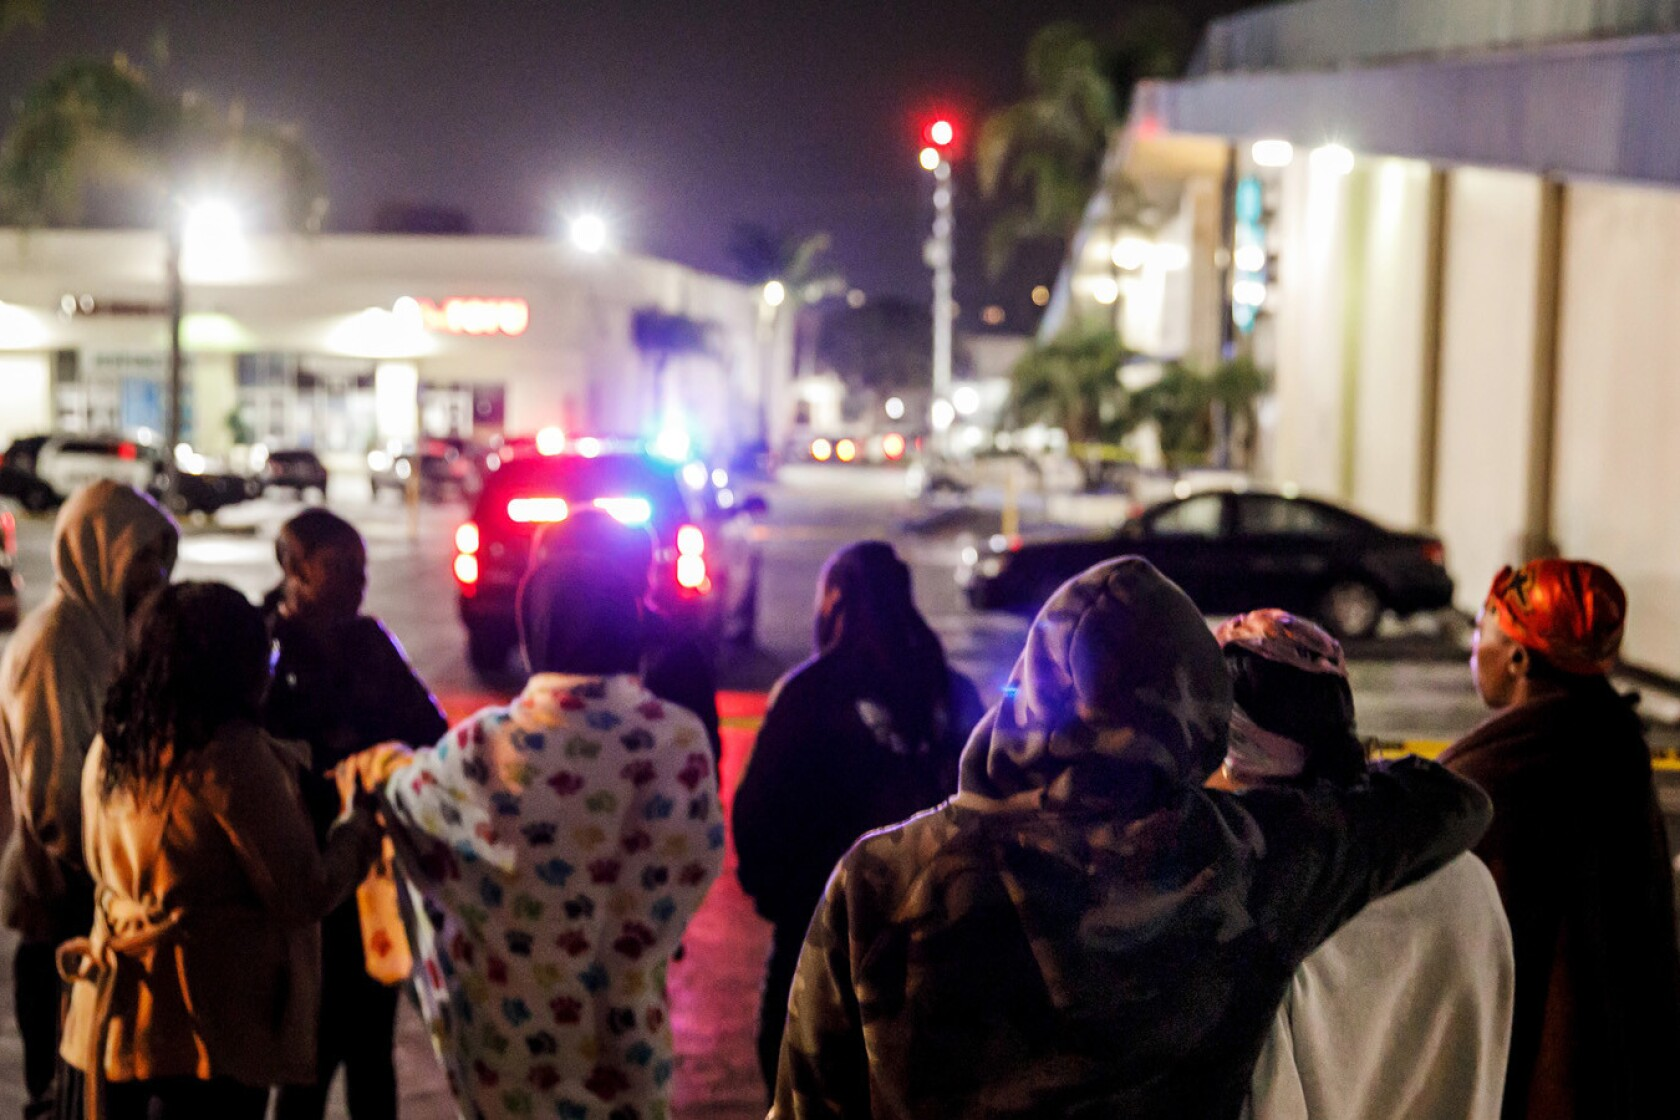 3 shot dead, 4 injured at Torrance bowling alley - Los Angeles Times